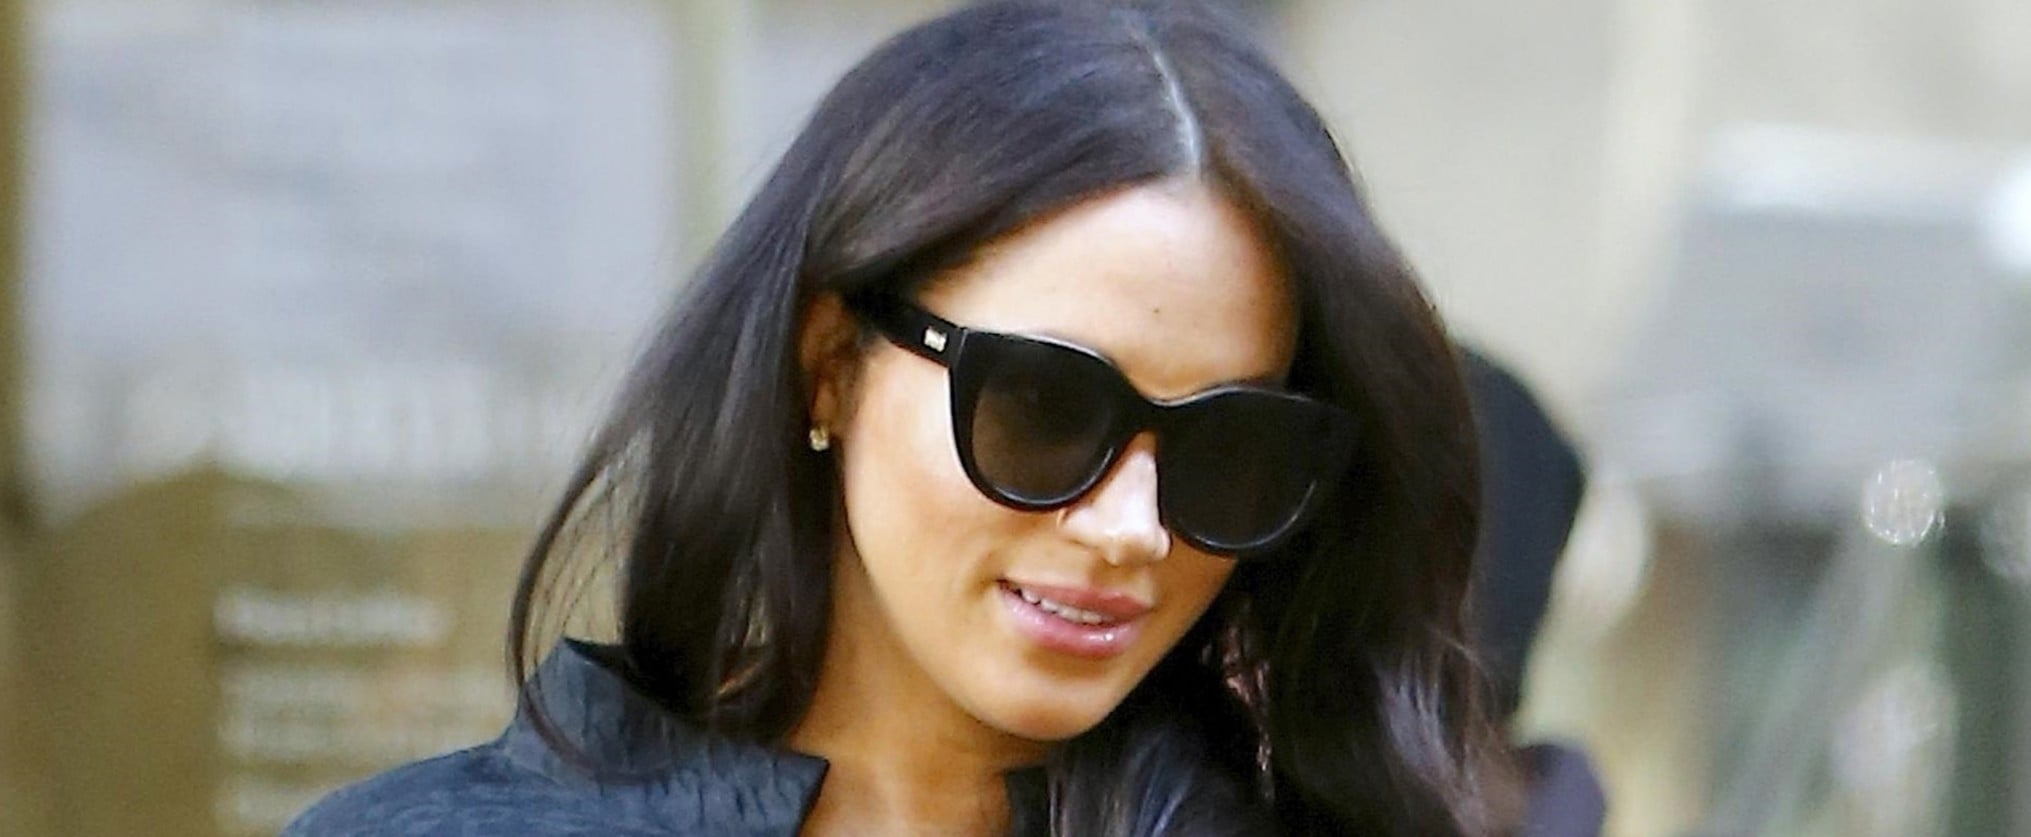 What Gifts Did Meghan Markle Get at Her NYC Baby Shower?